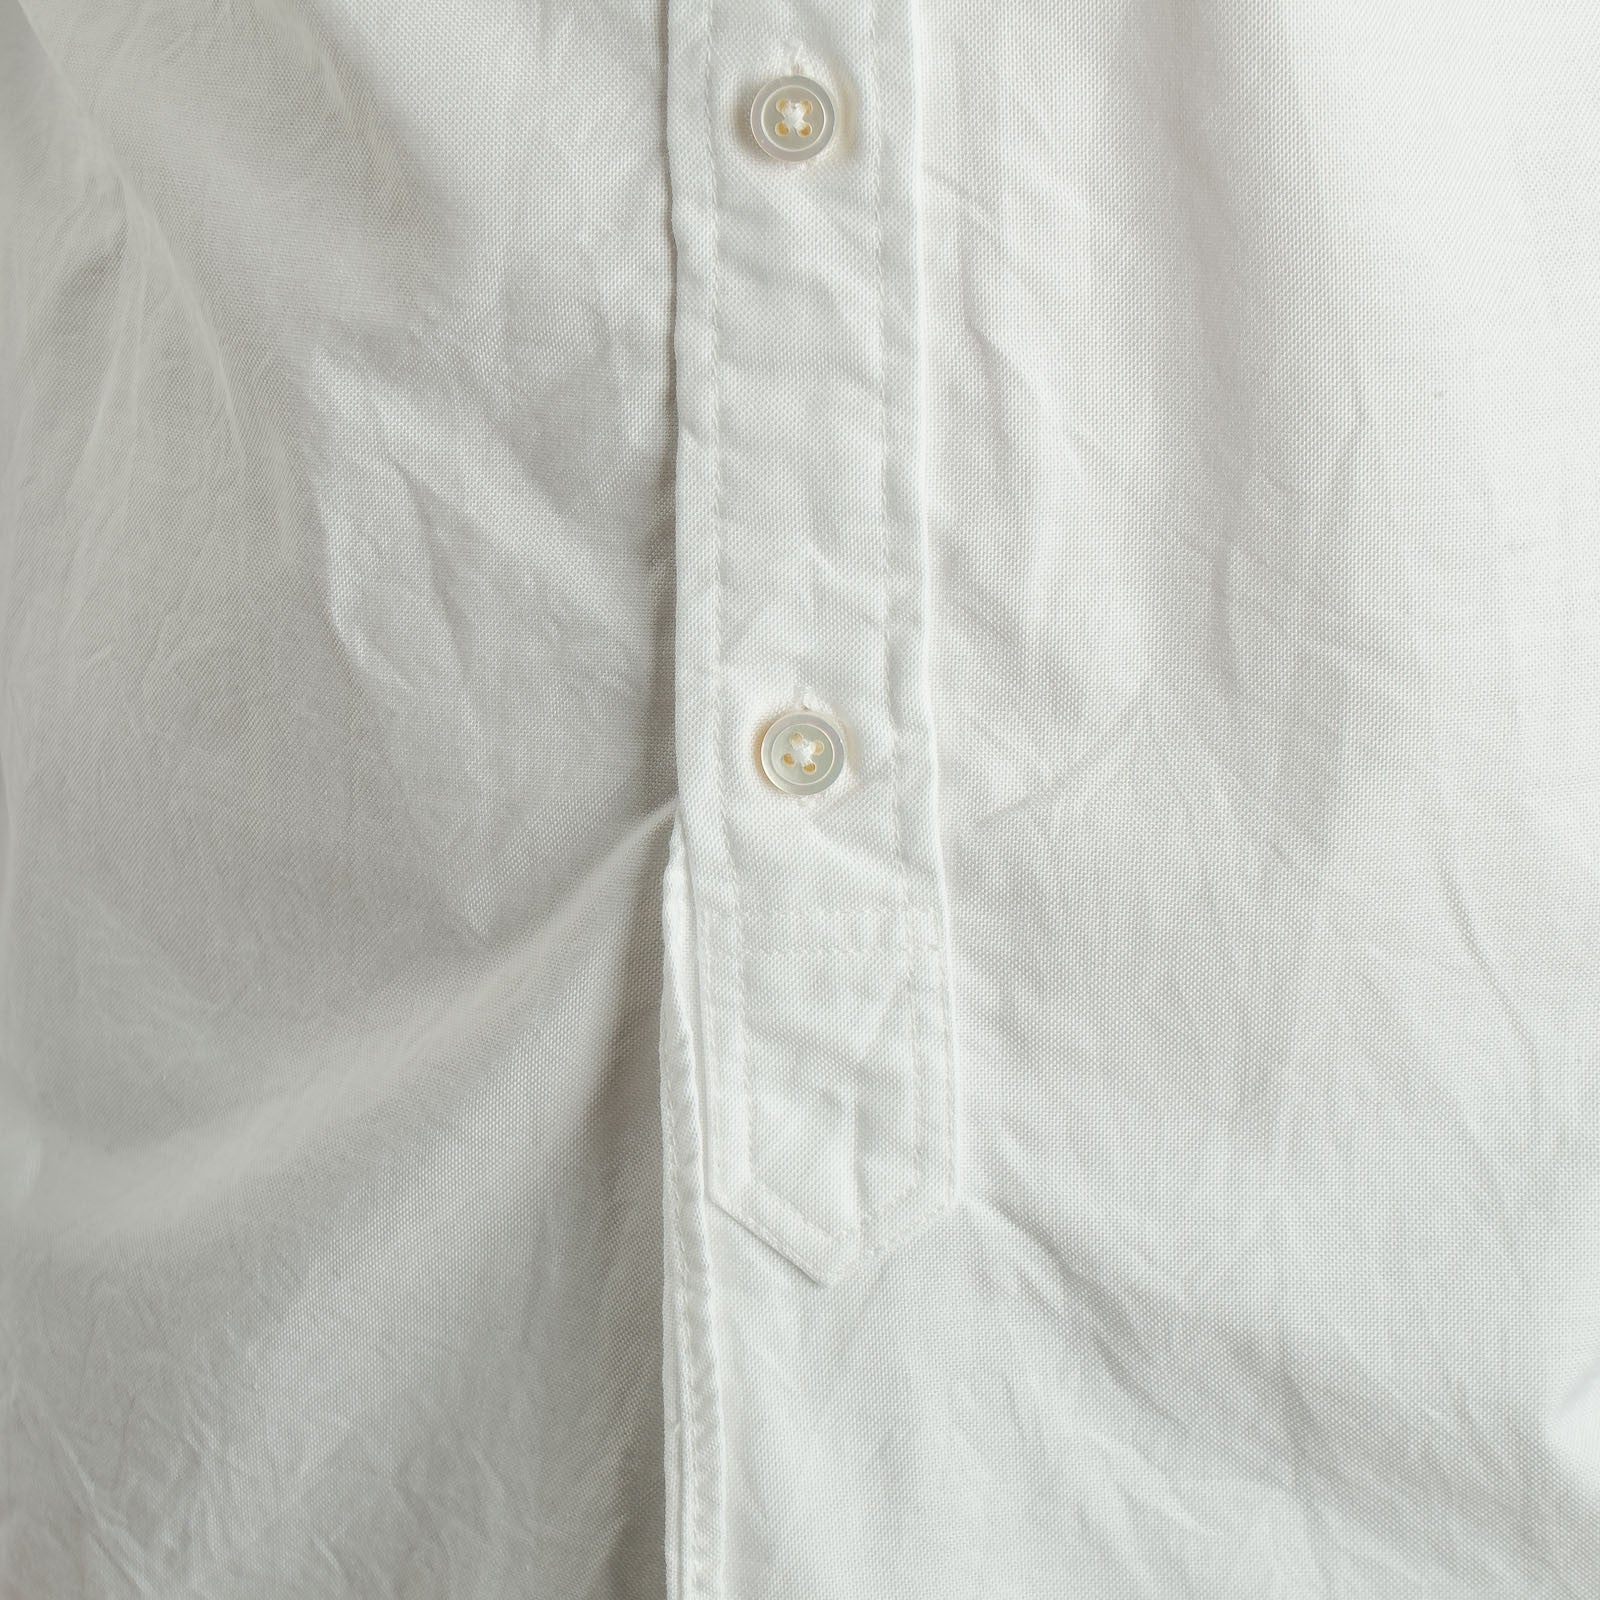 19 Century BD Shirt White Cotton Oxford